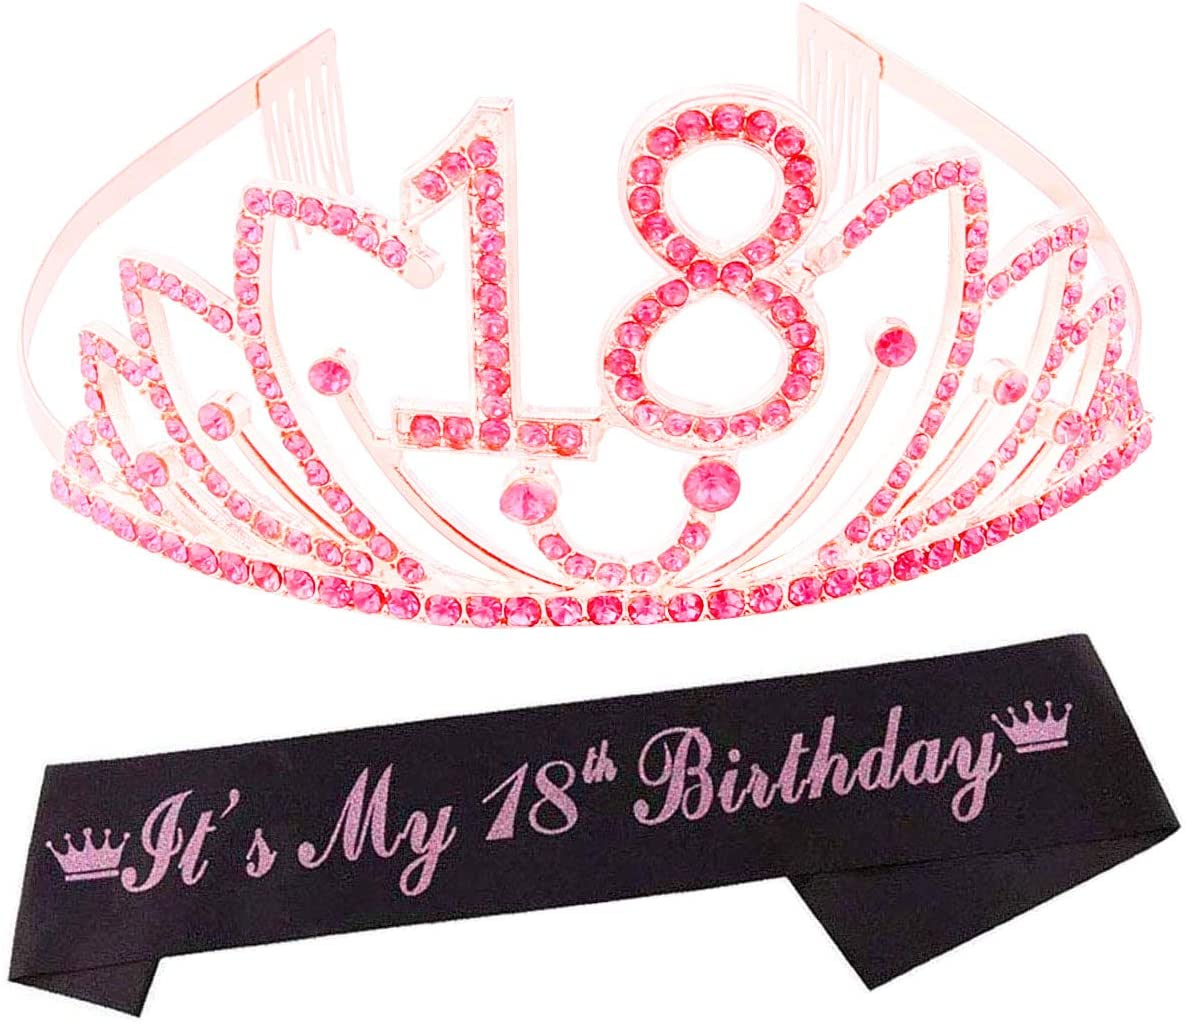 18th Birthday Tiara and Sash,18 & Fabulous Glitter Satin Sash and Crystal Tiara Crown,18th Birthday Party Decorations, Happy 18th Birthday Party Supplies,18th Birthday Gifts for Girl